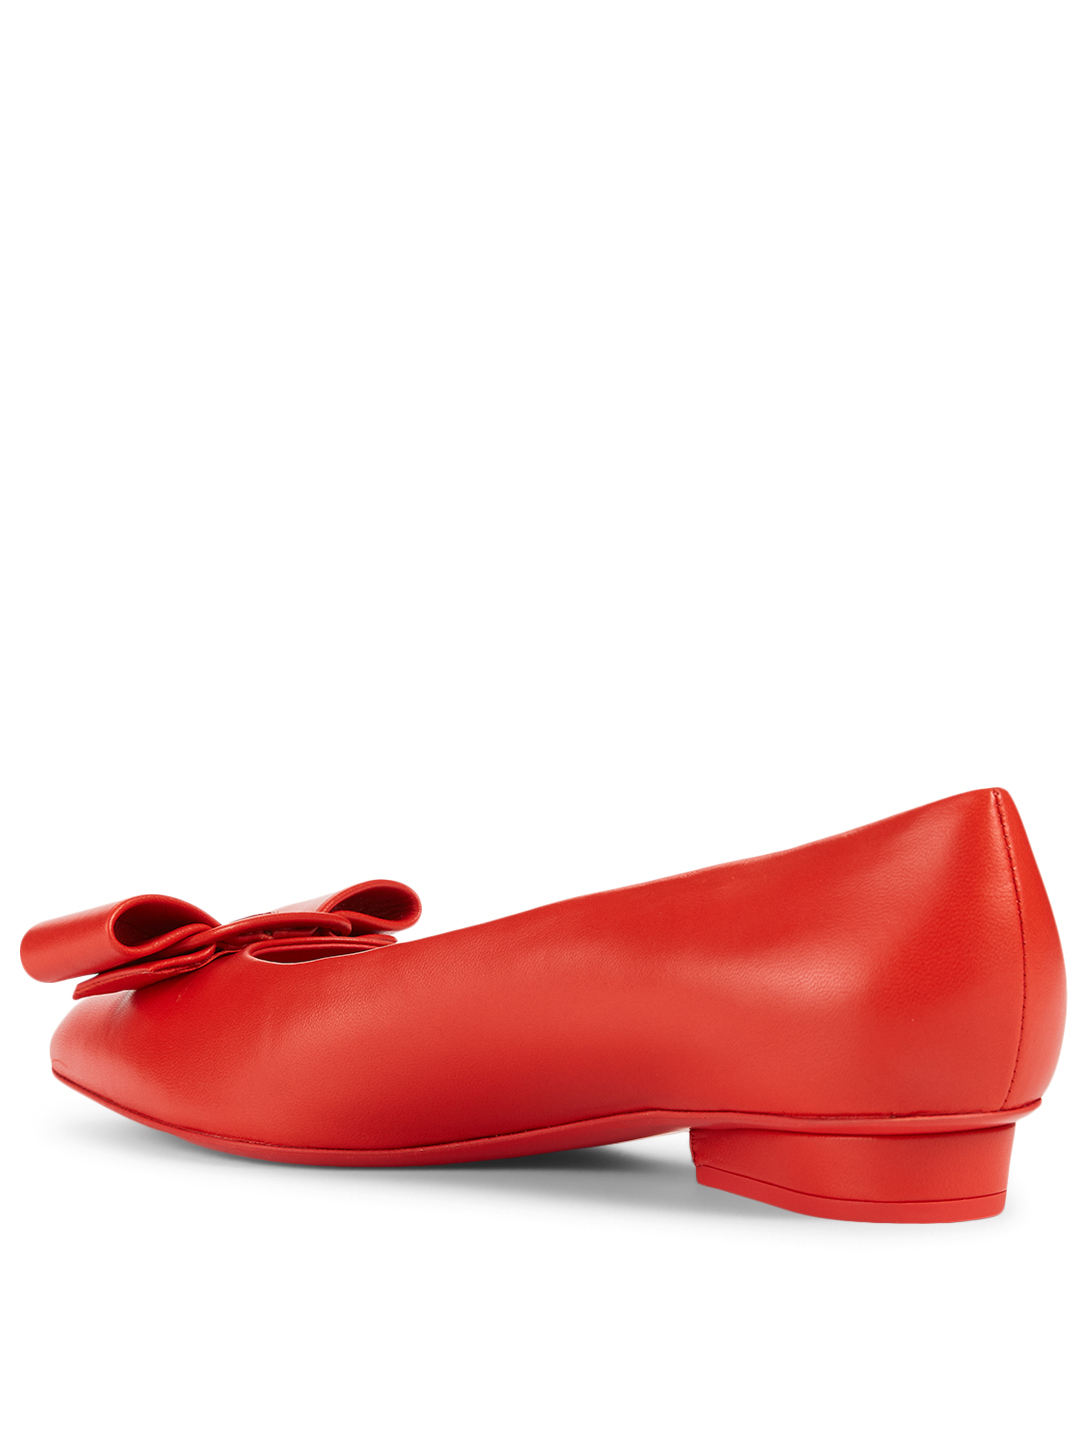 SALVATORE FERRAGAMO Viva Leather Ballet Flats Women's Red